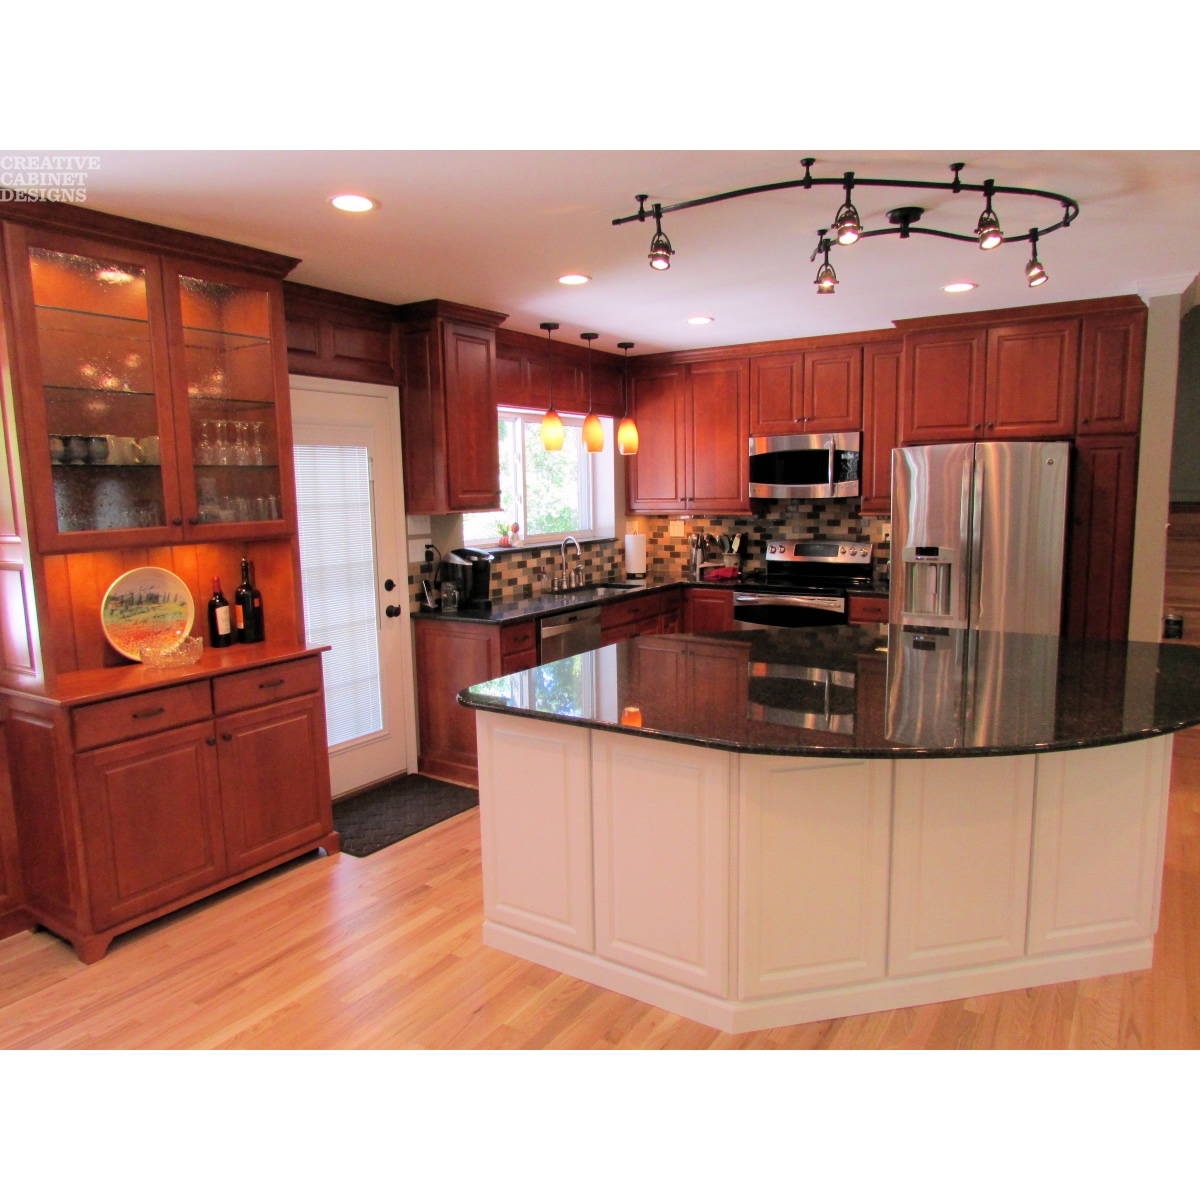 Brent Harral Cabinets Kitchens and Kitchen Islands